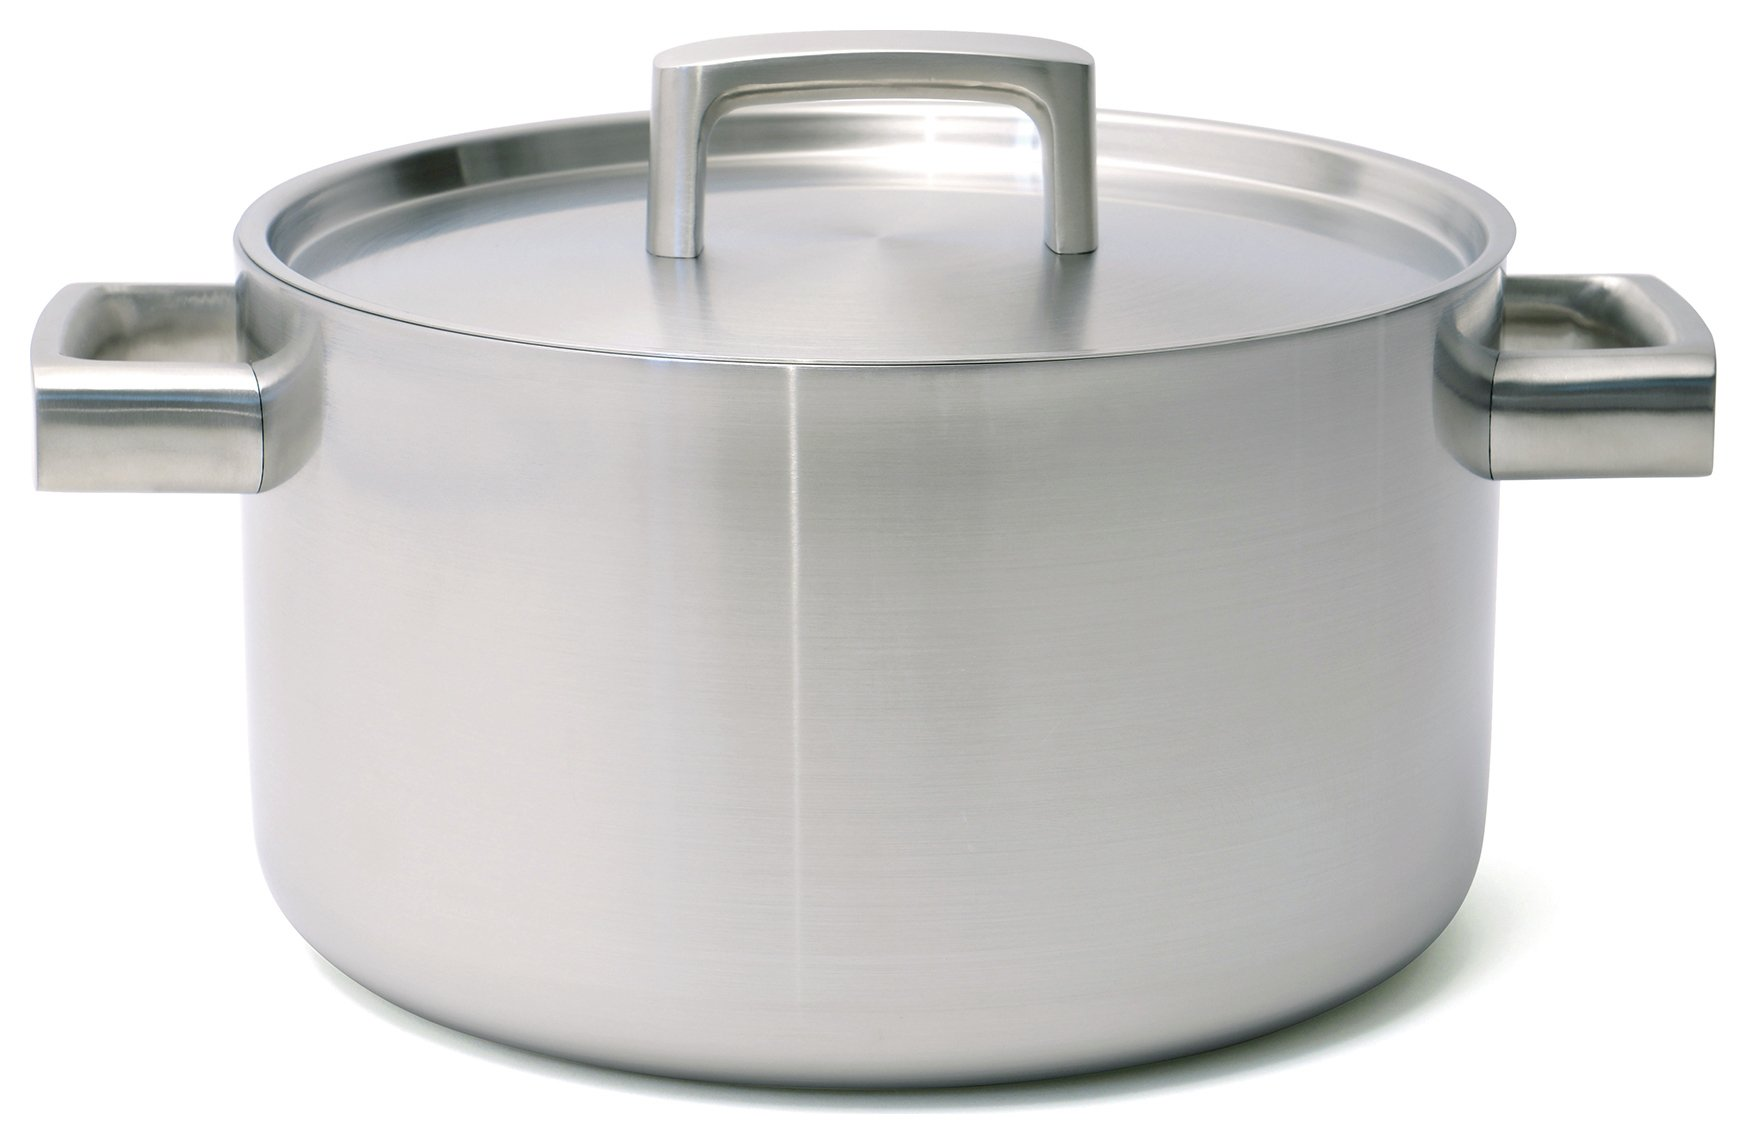 Image of BergHOFF 24cm Stainless Steel Stock Pot.